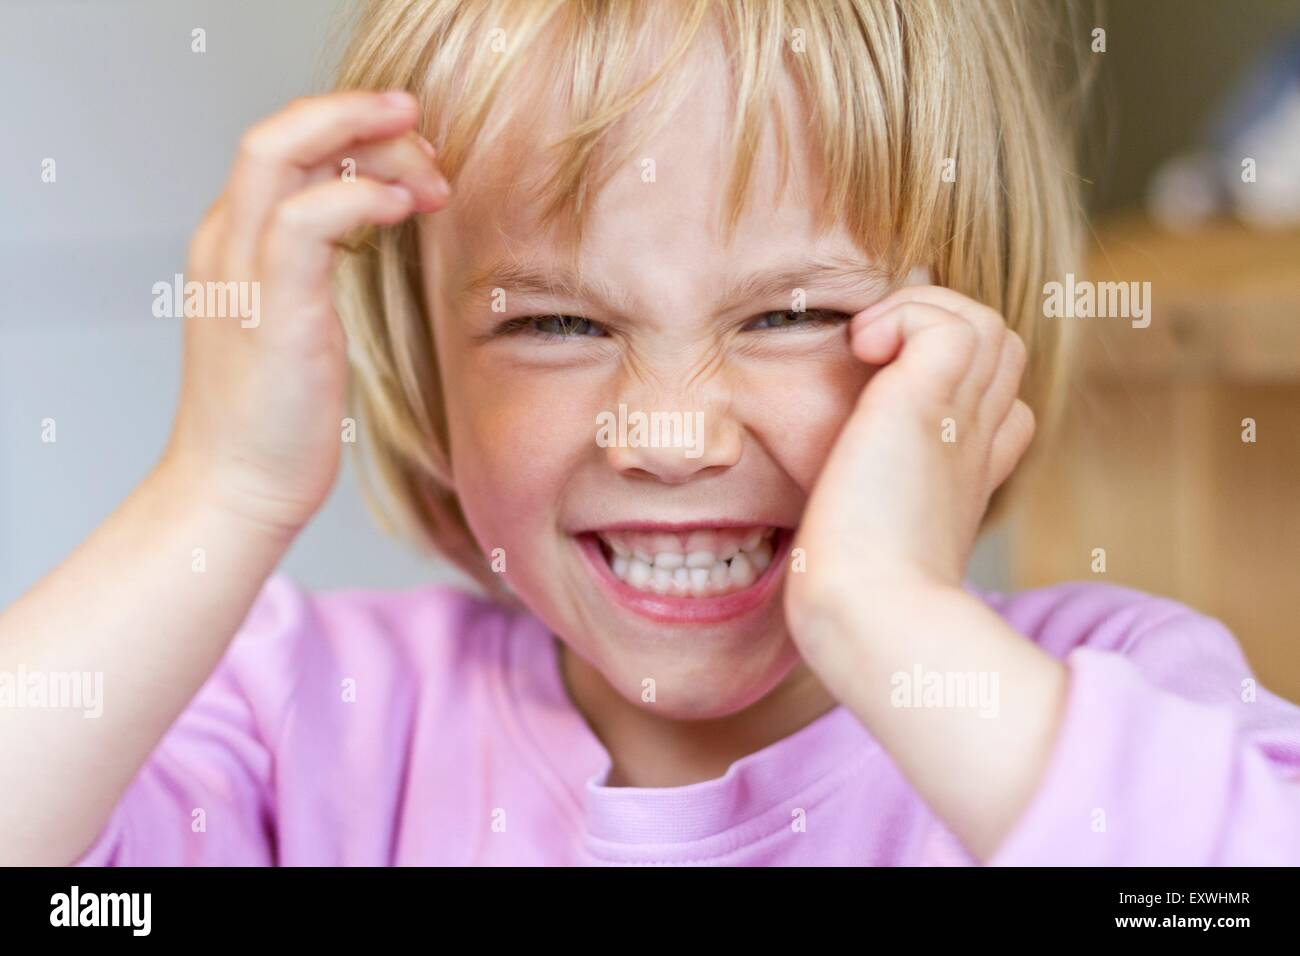 Girl pulling faces - Stock Image